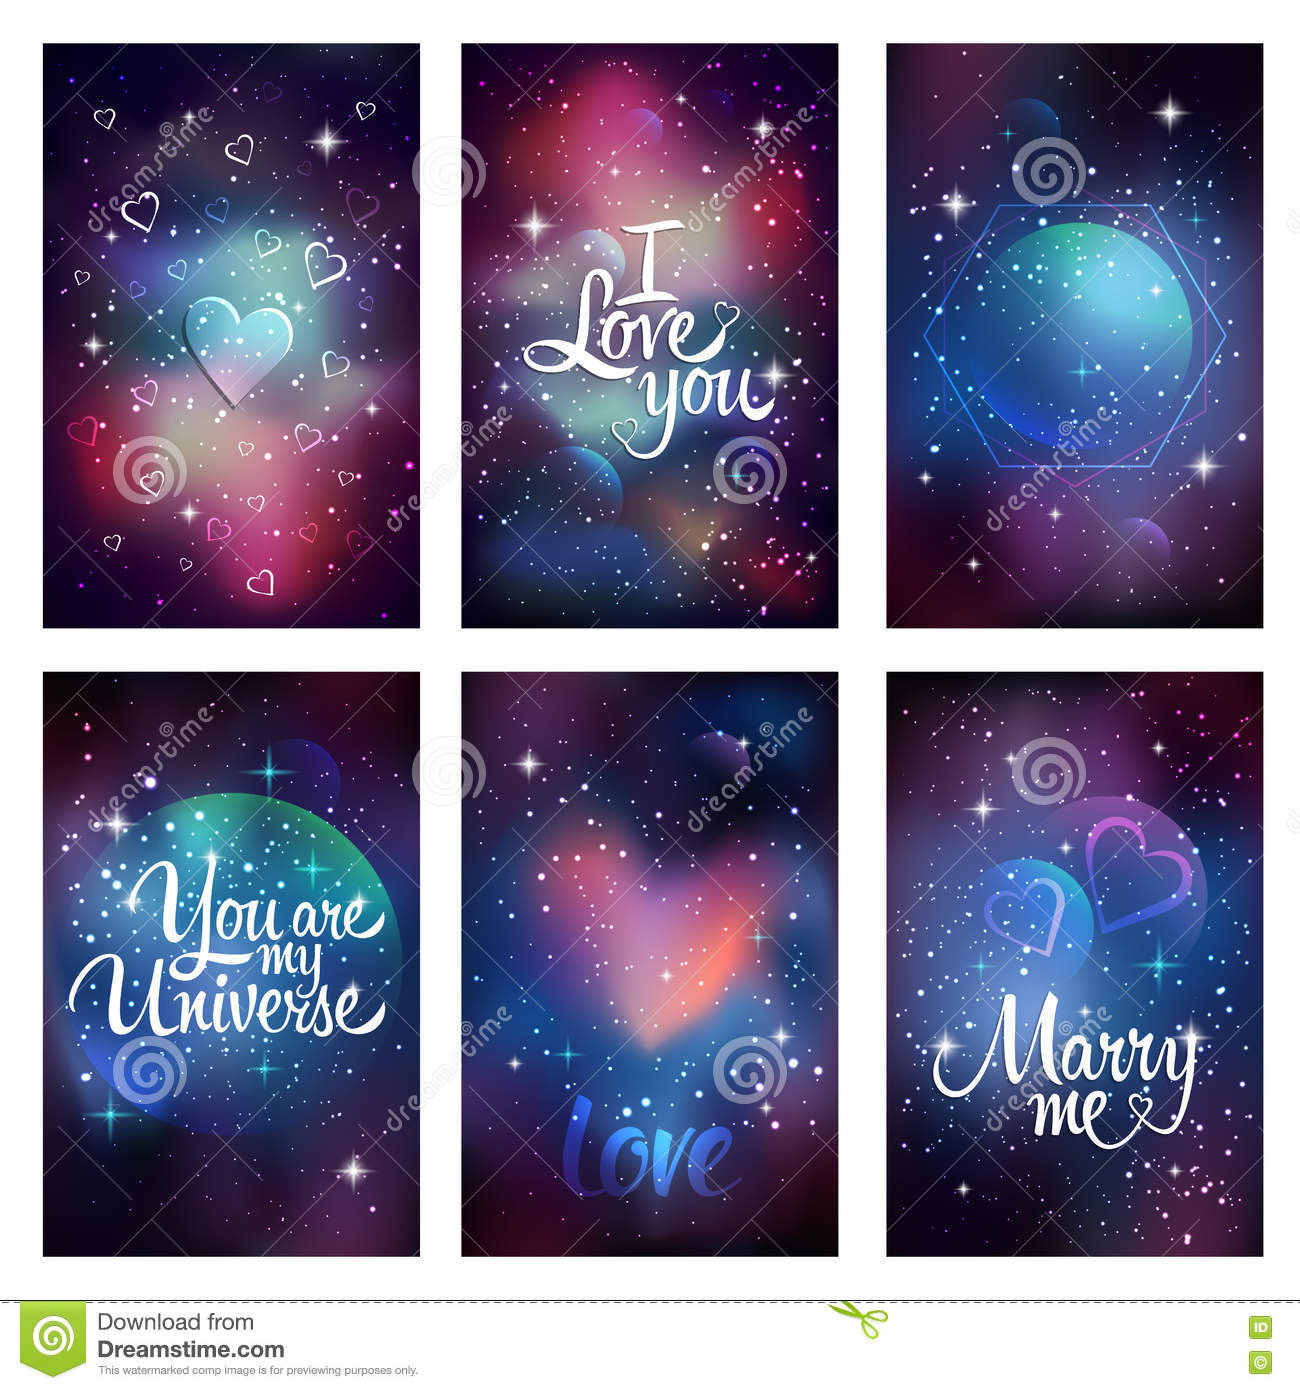 Cosmic Greeting Card Stock Vector Illustration Of Greeting 76711616